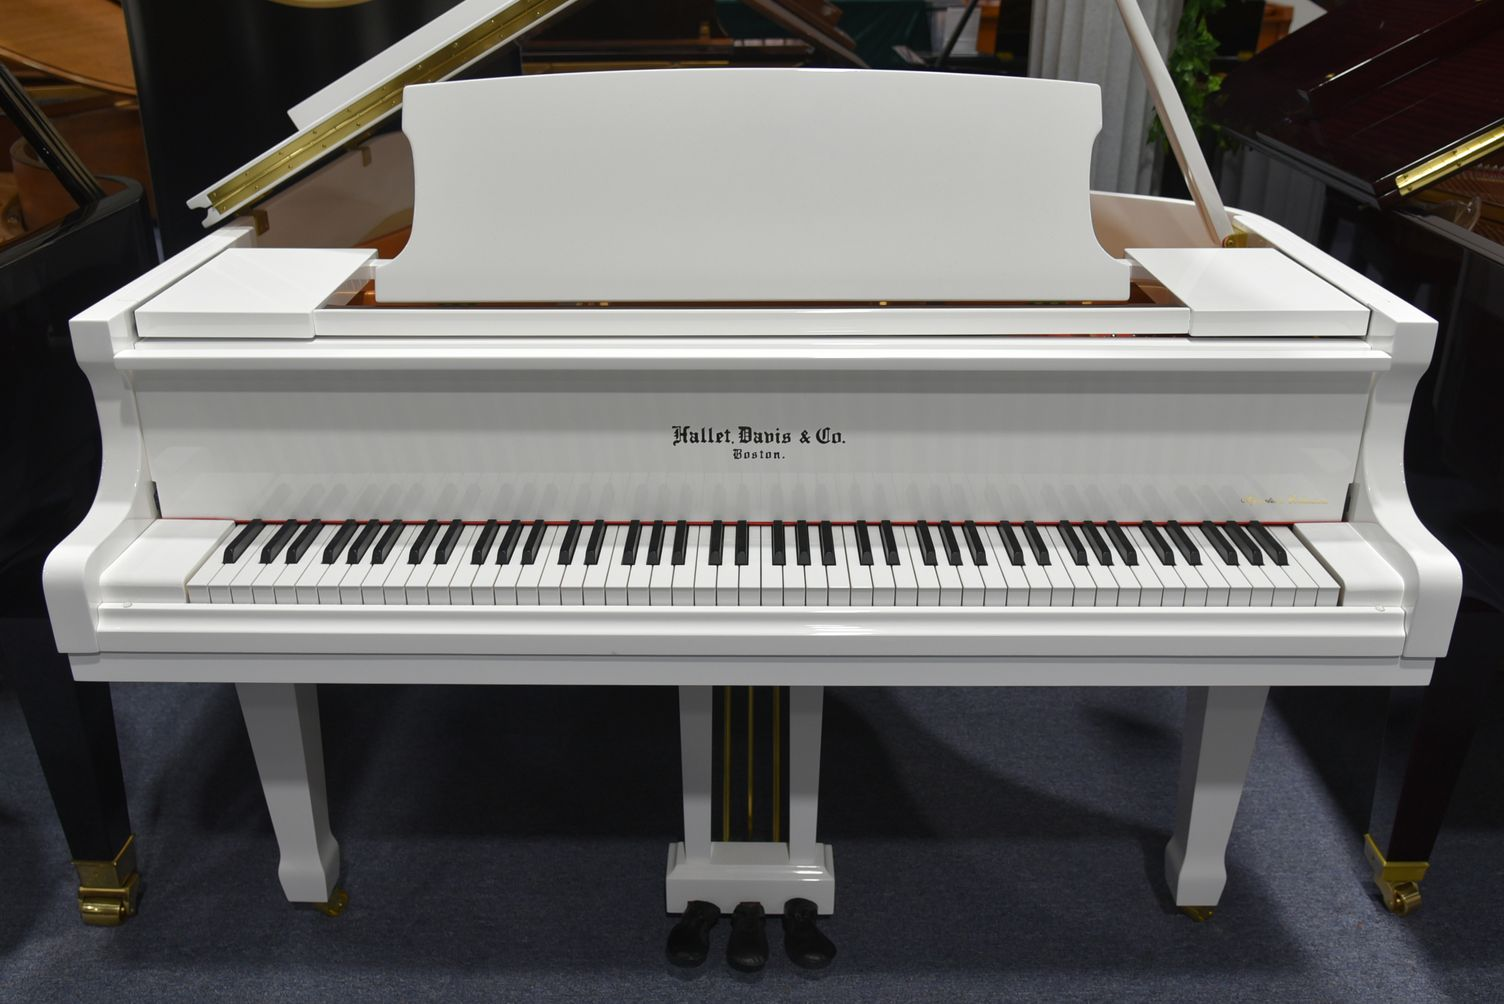 Best Used grand Pianos under 20,000